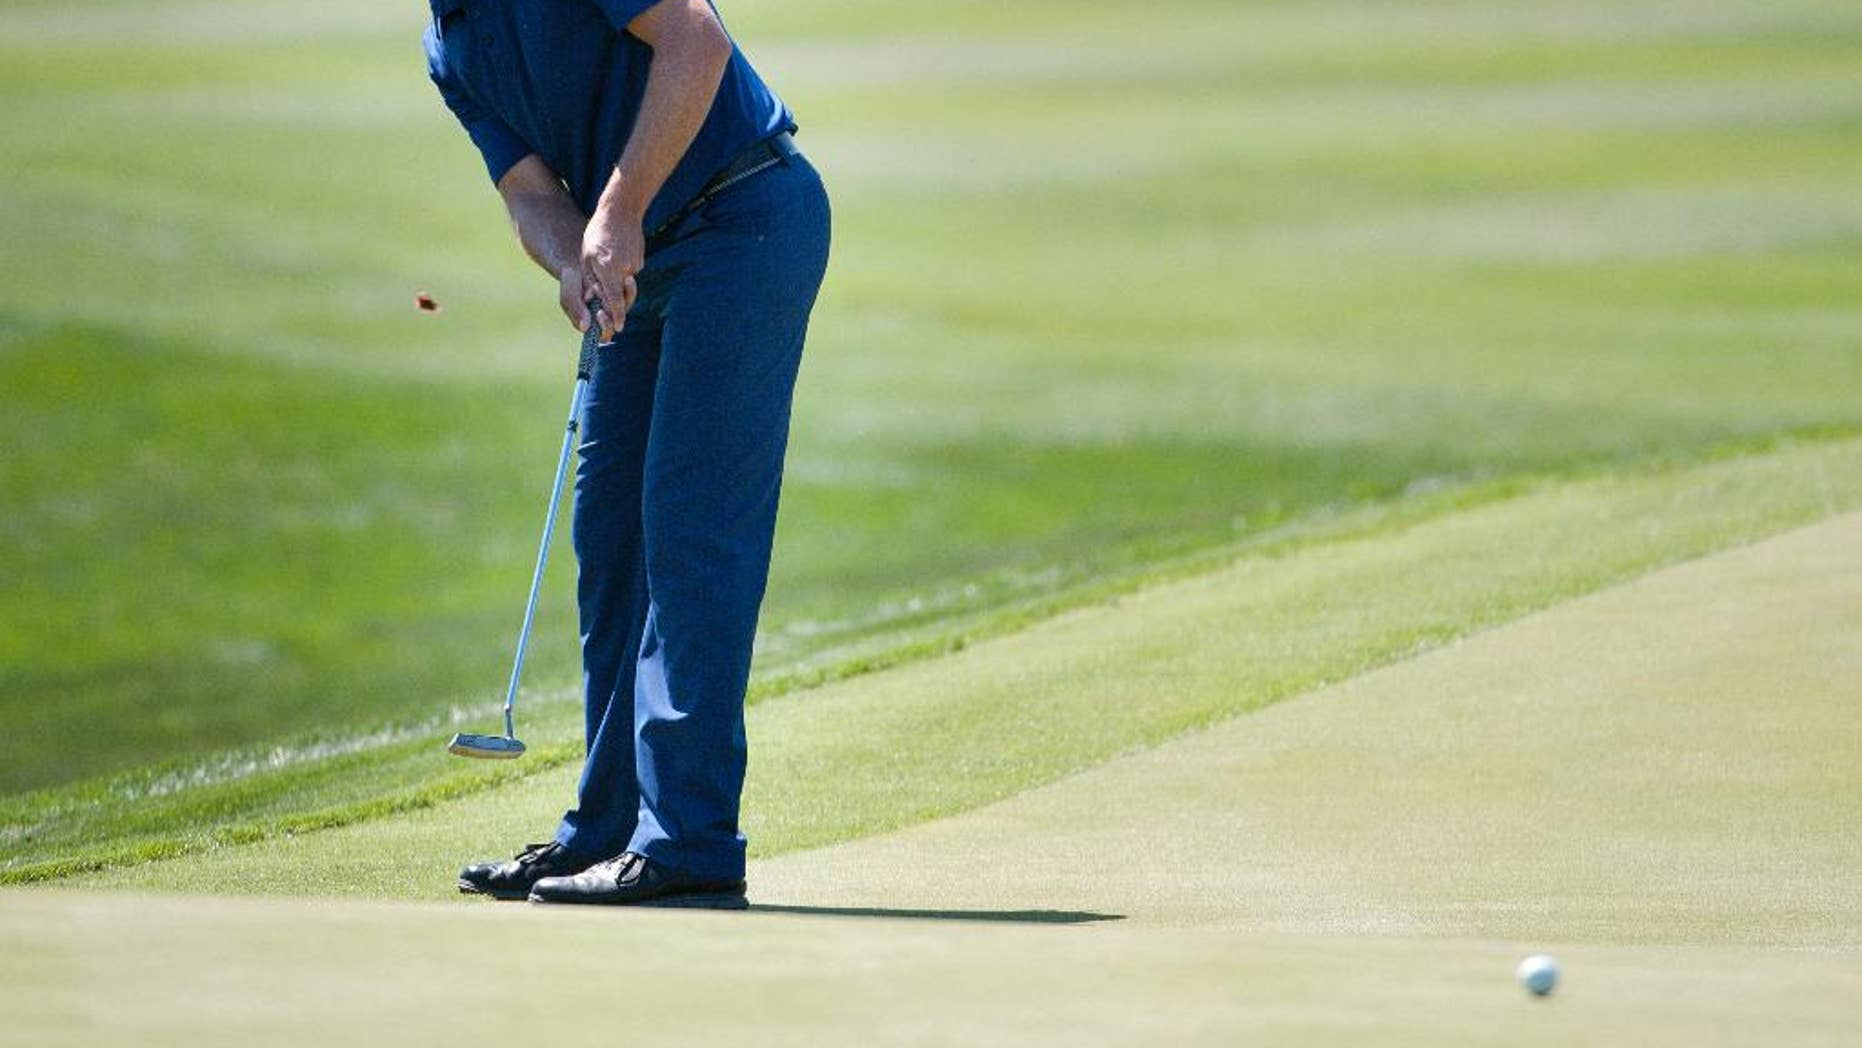 Aaron Baddeley, of Australia, putts on the ninth green during the second round of the Valero Texas Open golf tournament, Friday, March 27, 2015, in San Antonio. (AP Photo/Darren Abate)